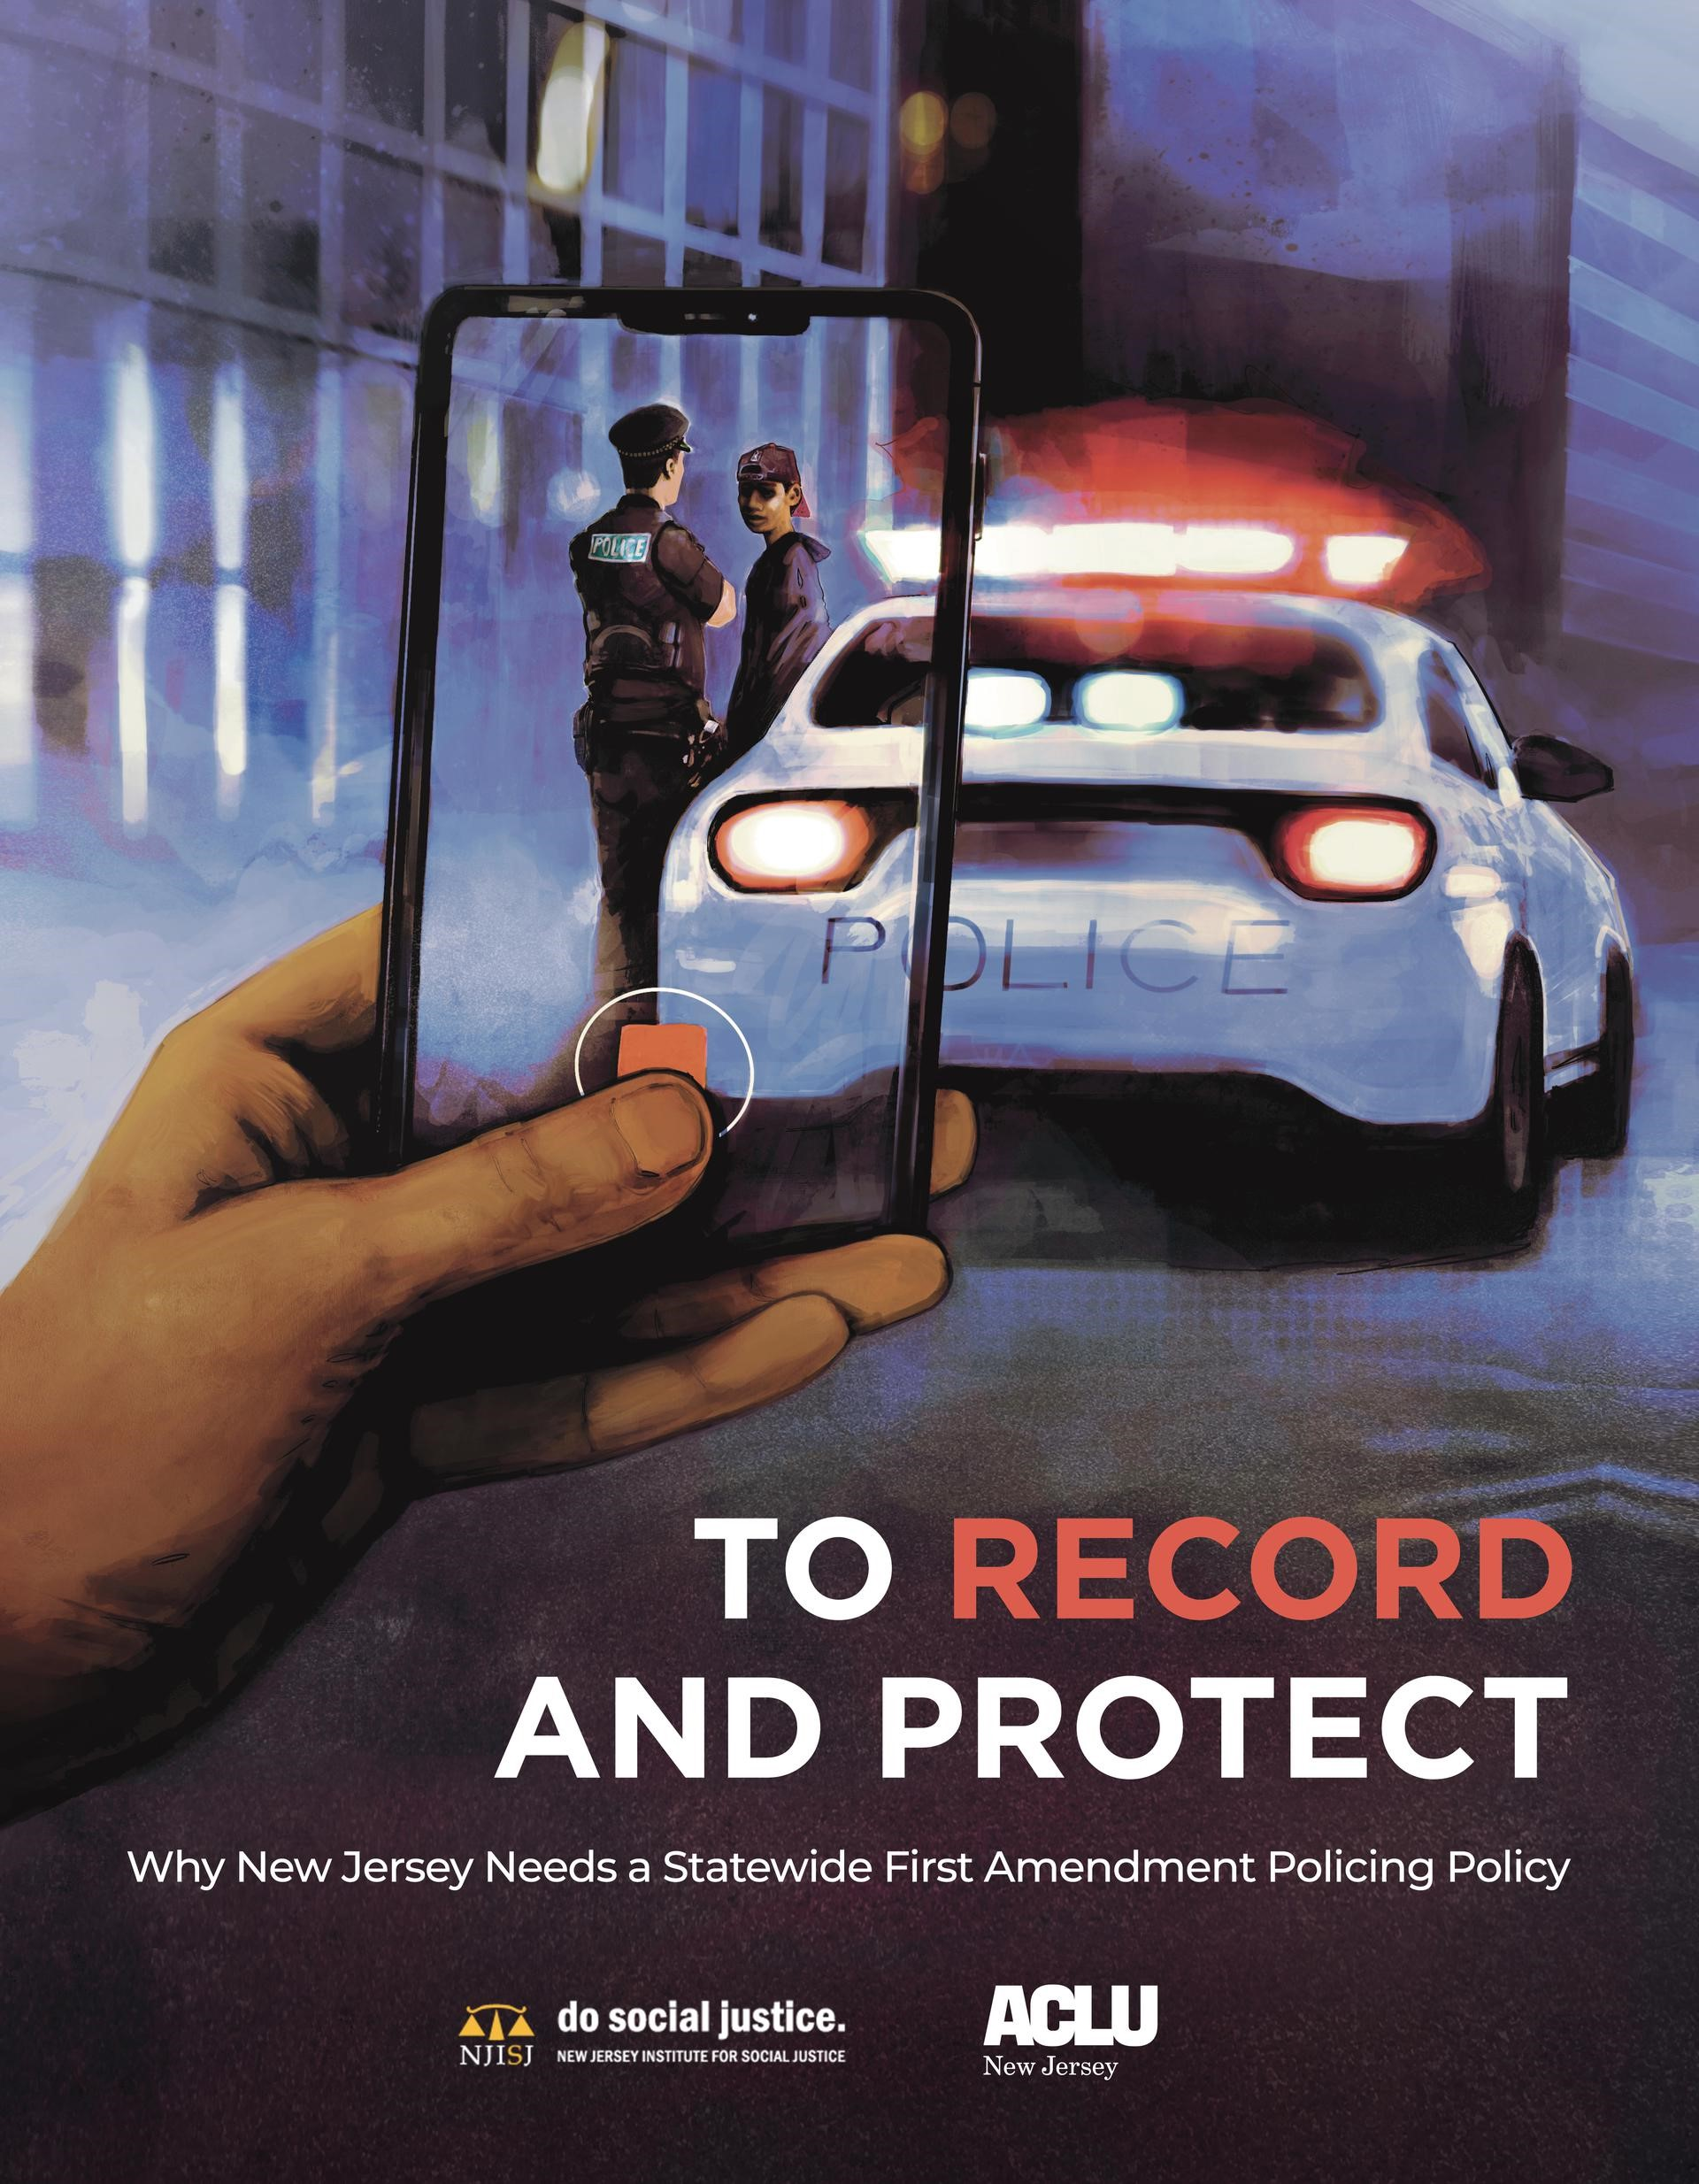 To Record and Protect